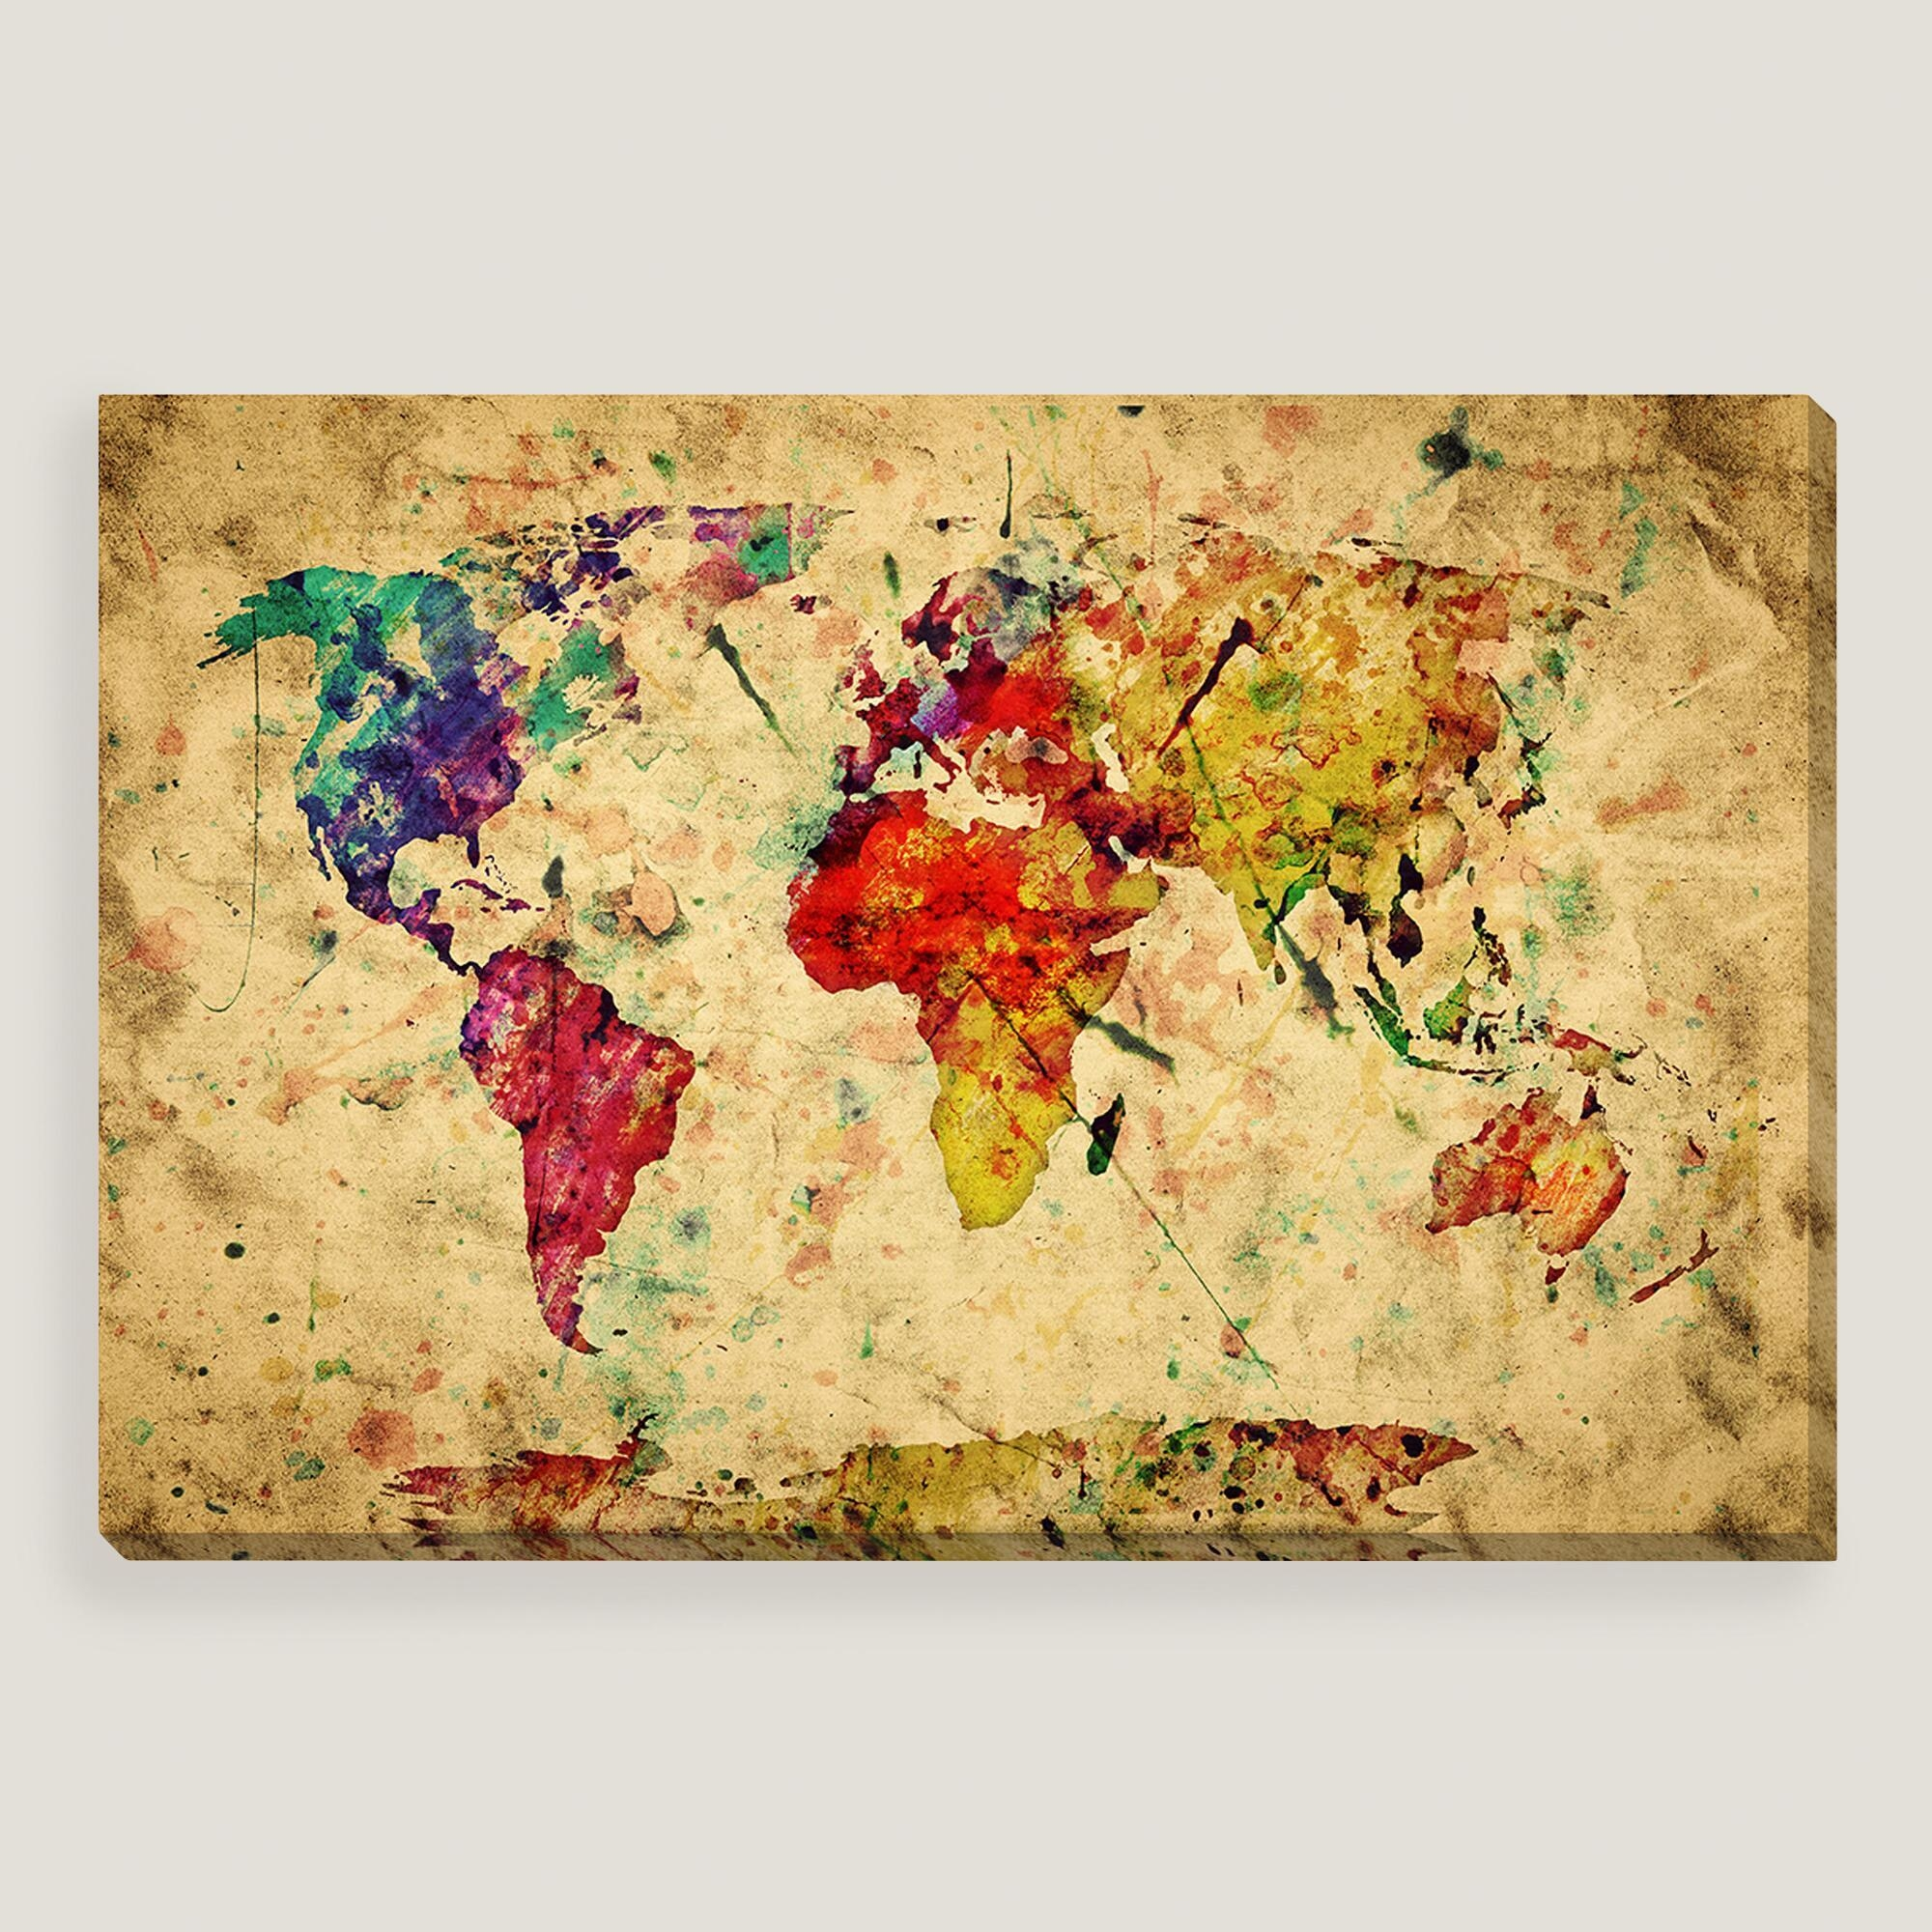 Wall Art Design Ideas: Customize Framed Vintage World Map Wall Art In Framed World Map Wall Art (Image 14 of 20)